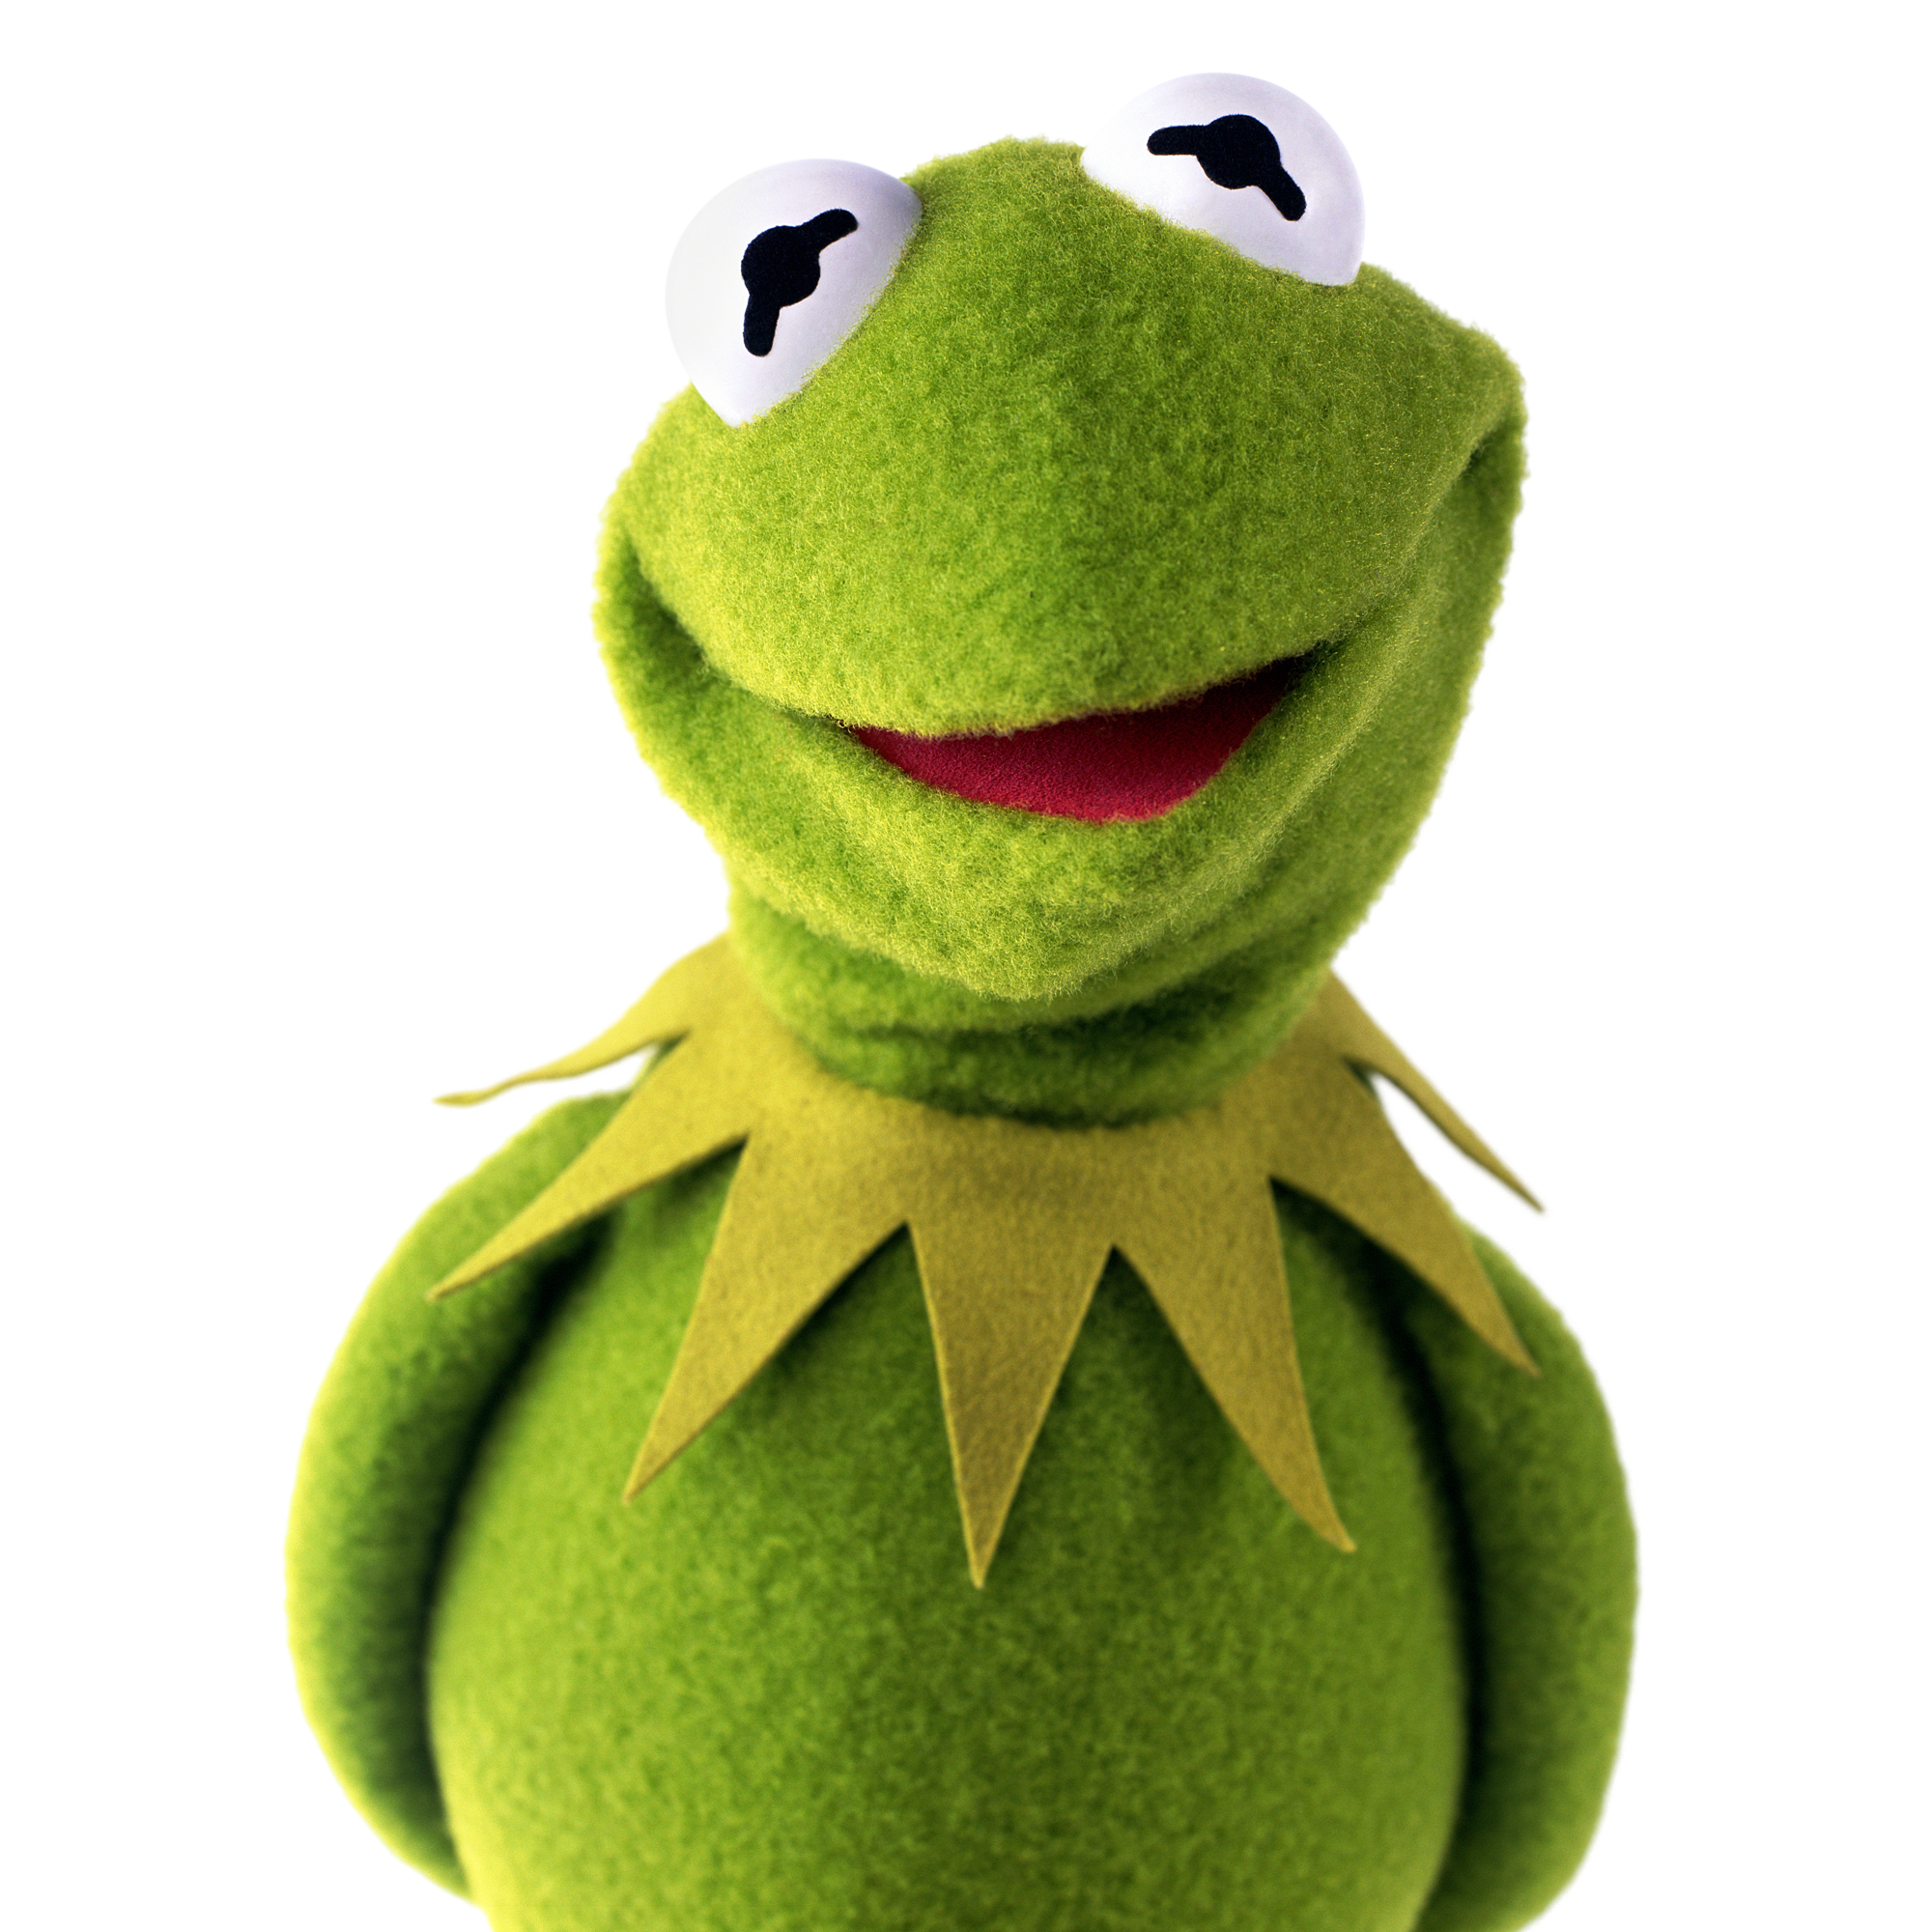 Kermit_the_Frog.png